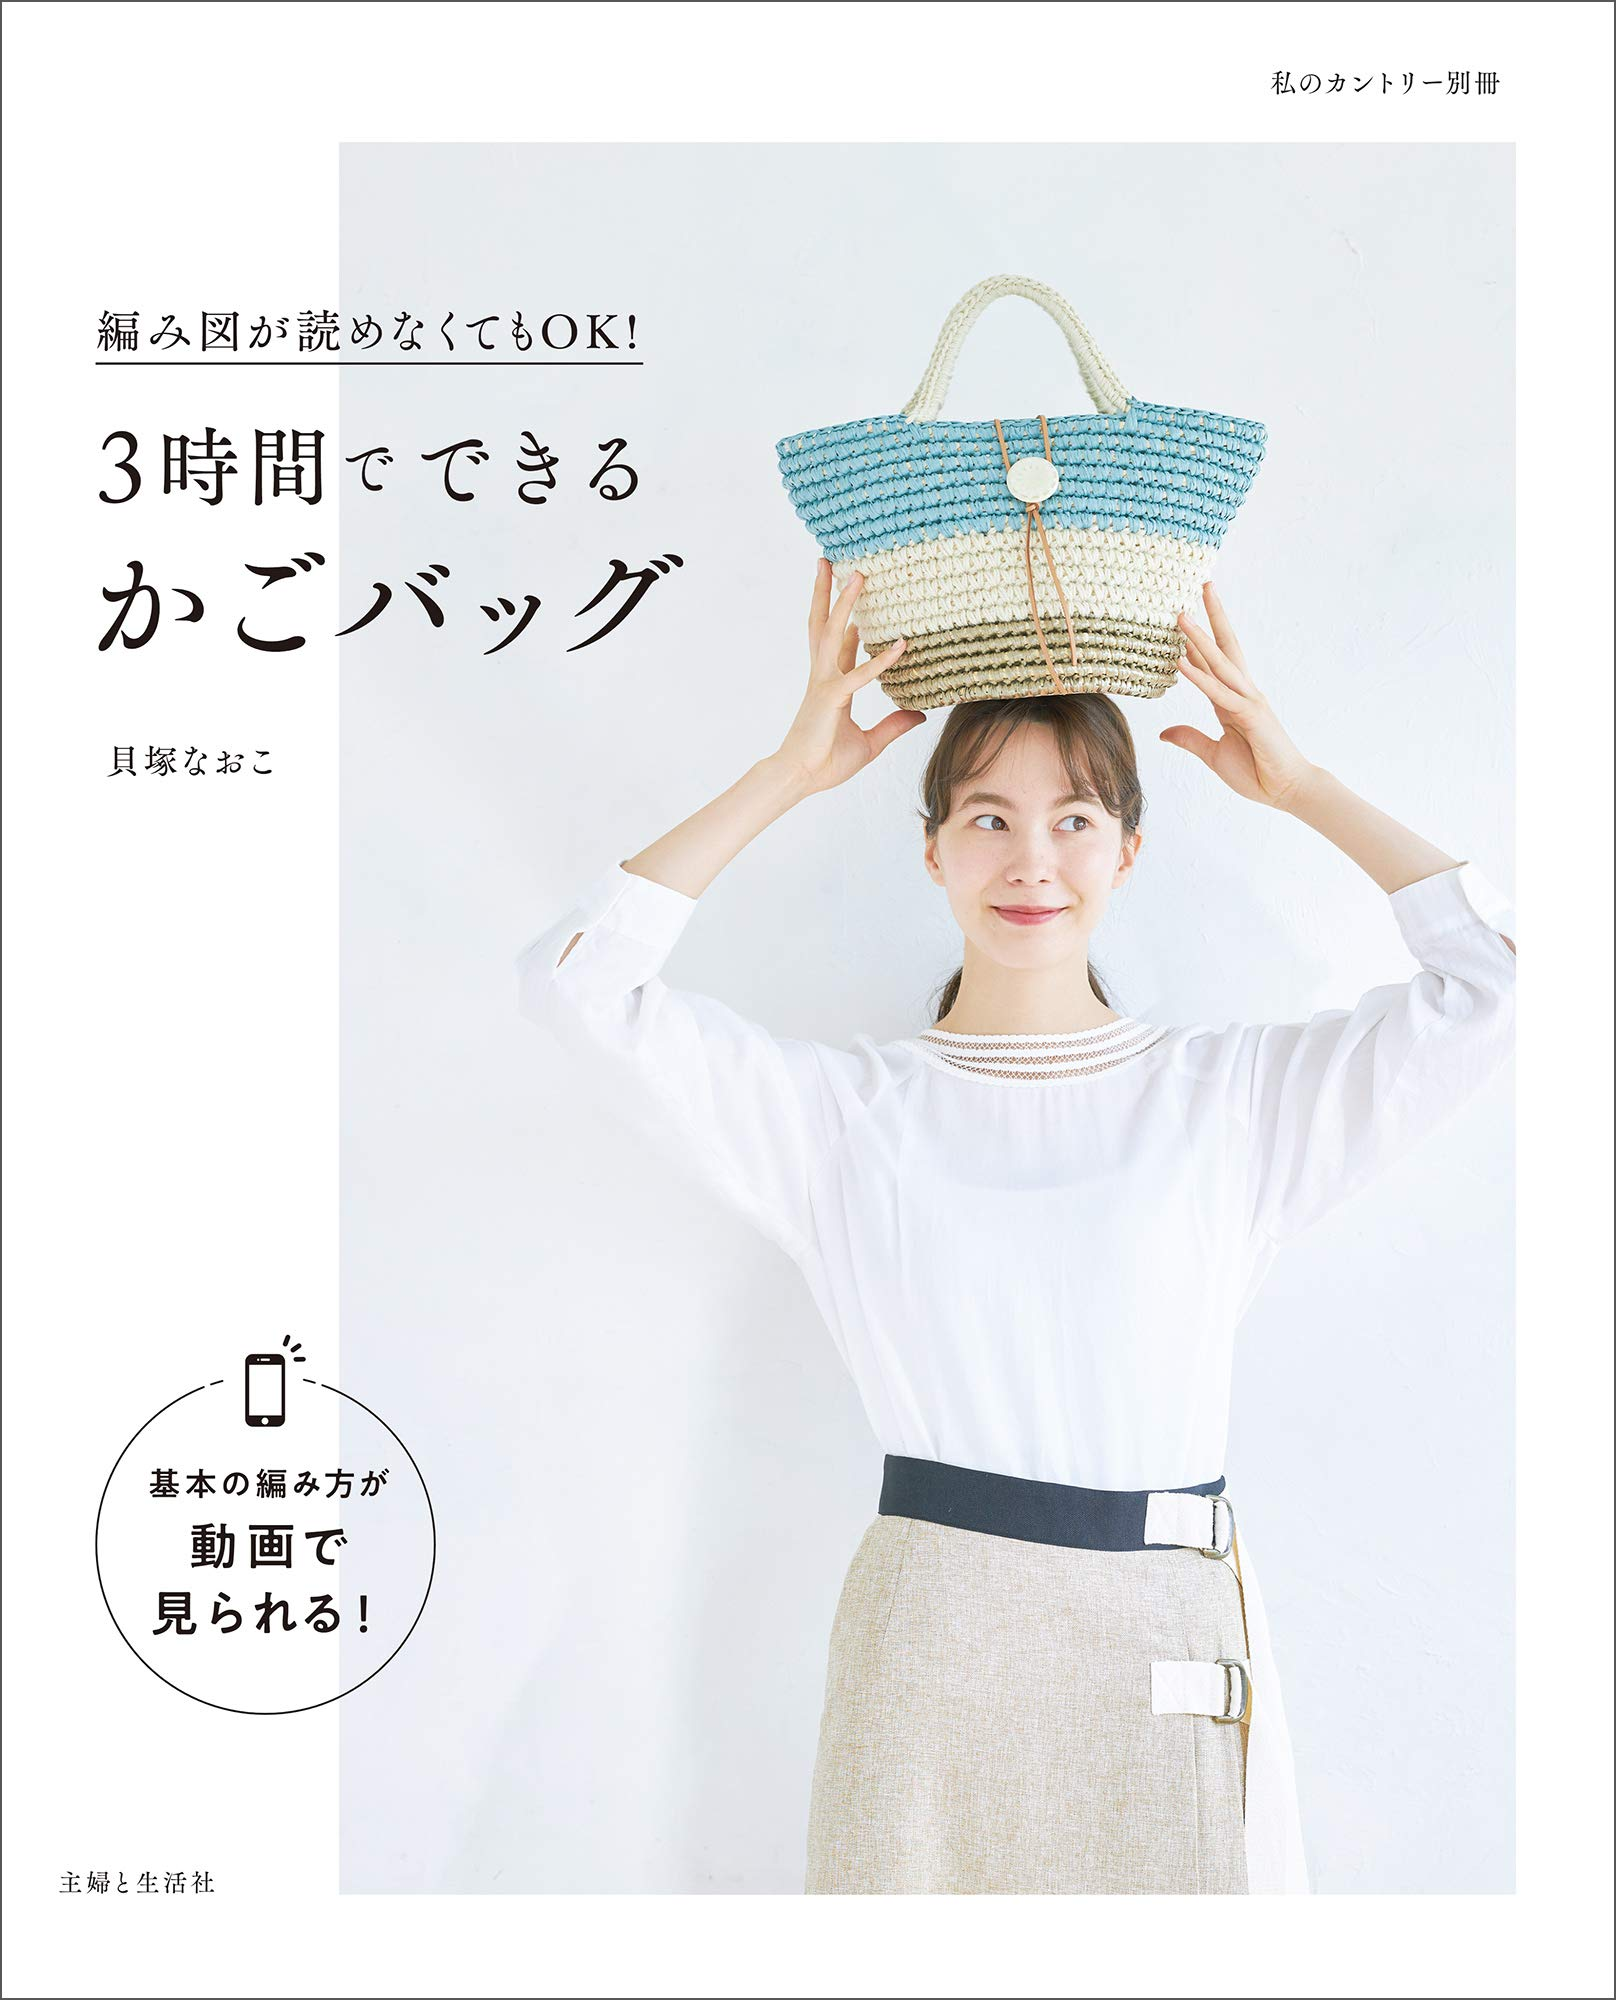 Basket bag that can be done in 3 hours